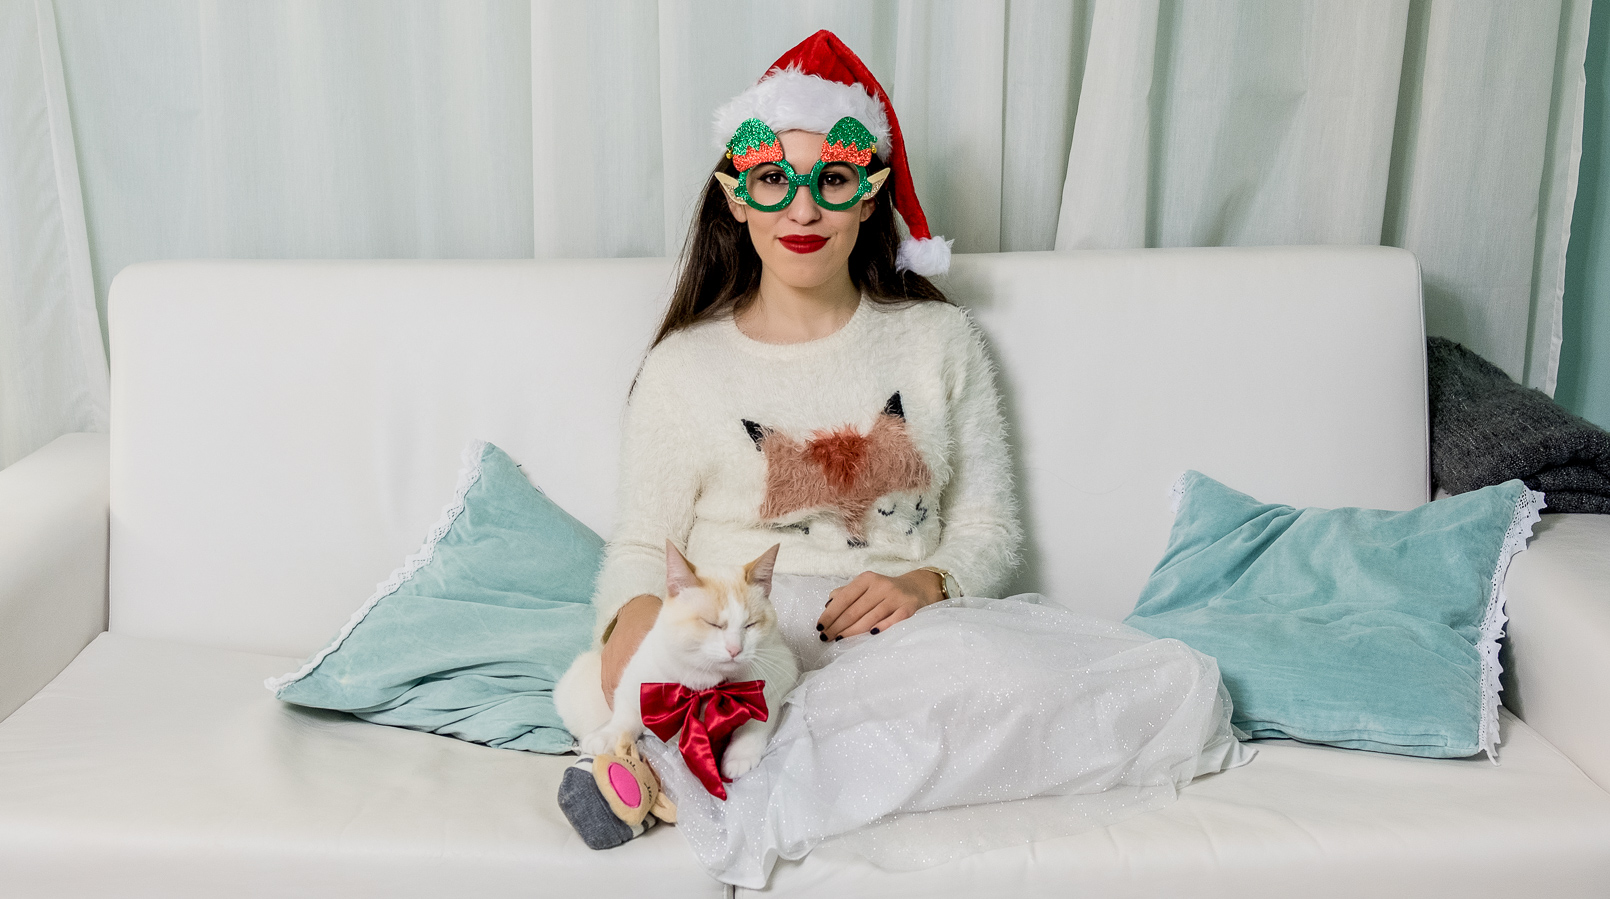 Le Fashionaire Merry Christmas my loves! kiko cute kitty cat silk bow white fluffy fox jumper zara kids green glasses 4555F EN